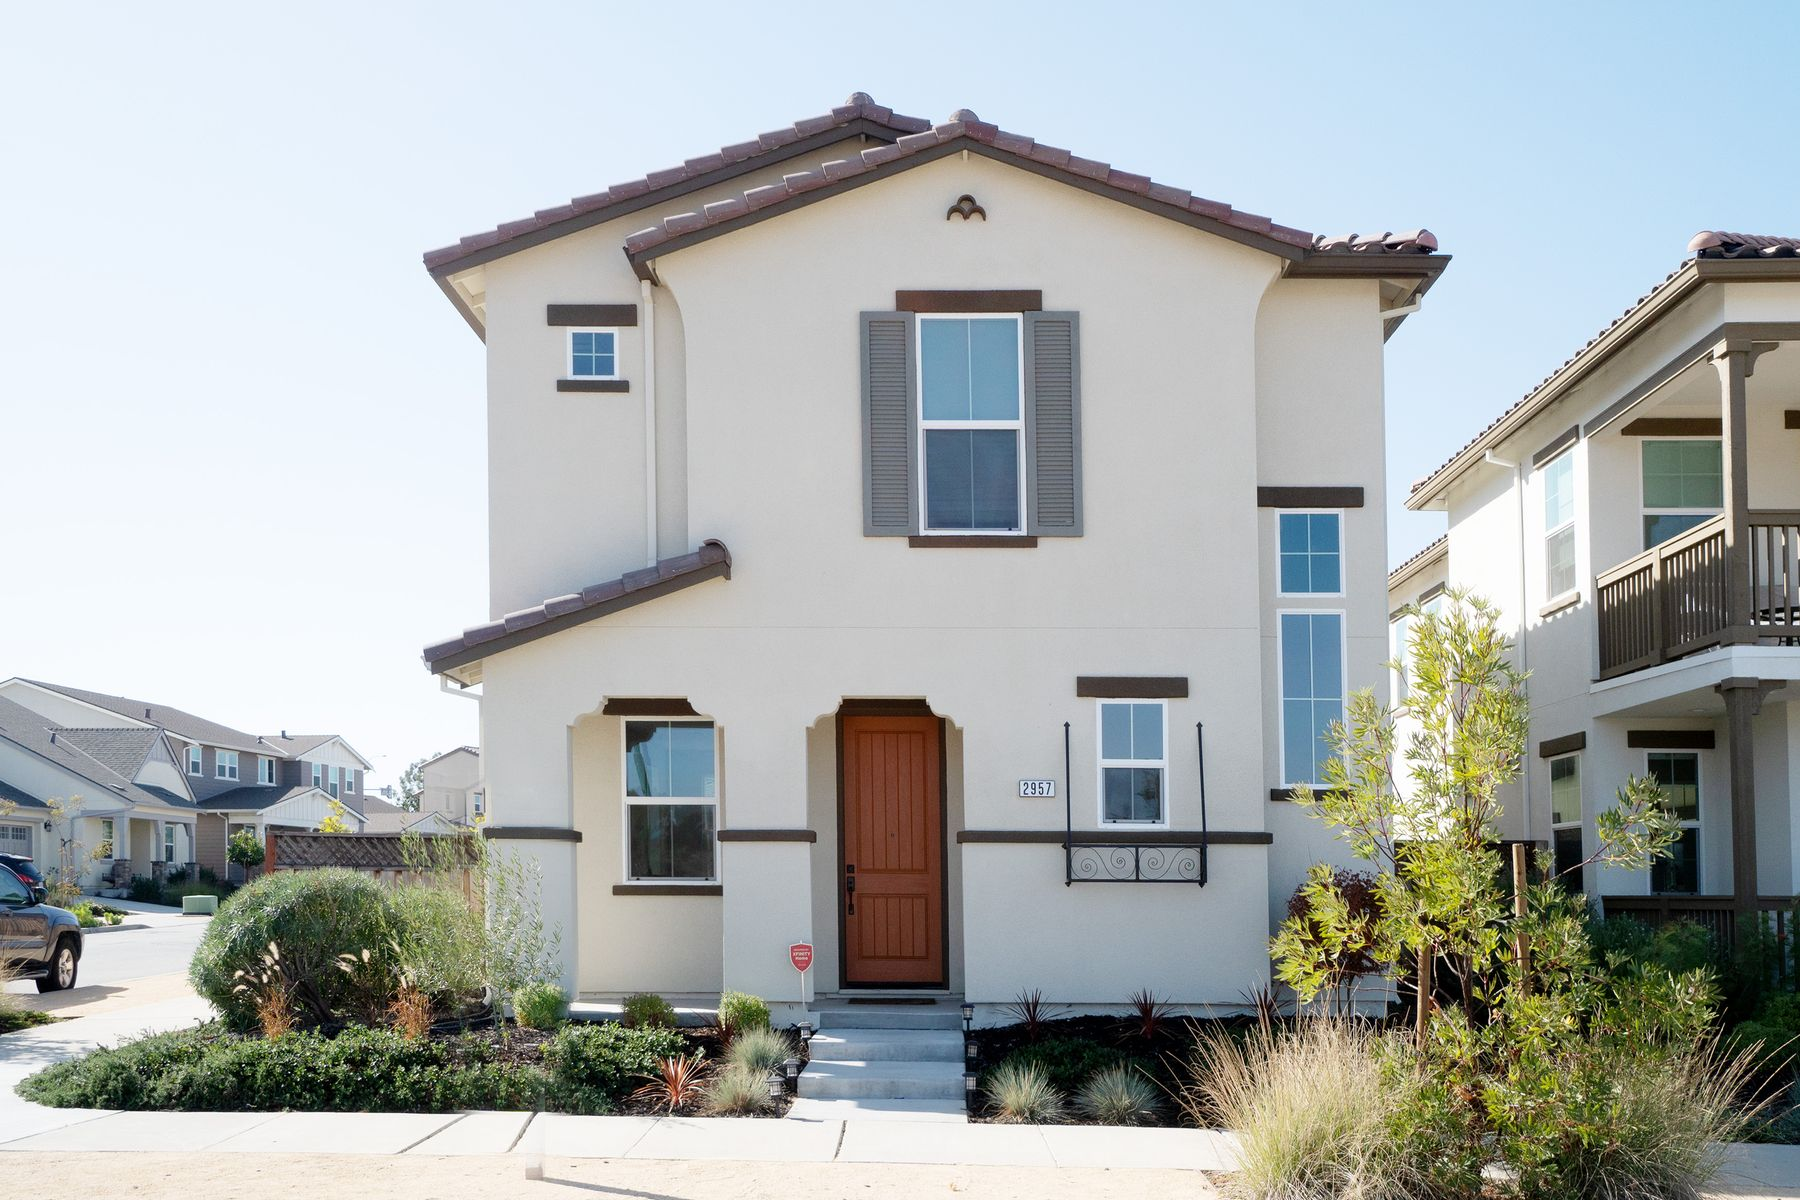 Single Family Homes for Sale at Spanish Home Corner Lot Across From Park 2957 Denali Drive Marina, California 93933 United States